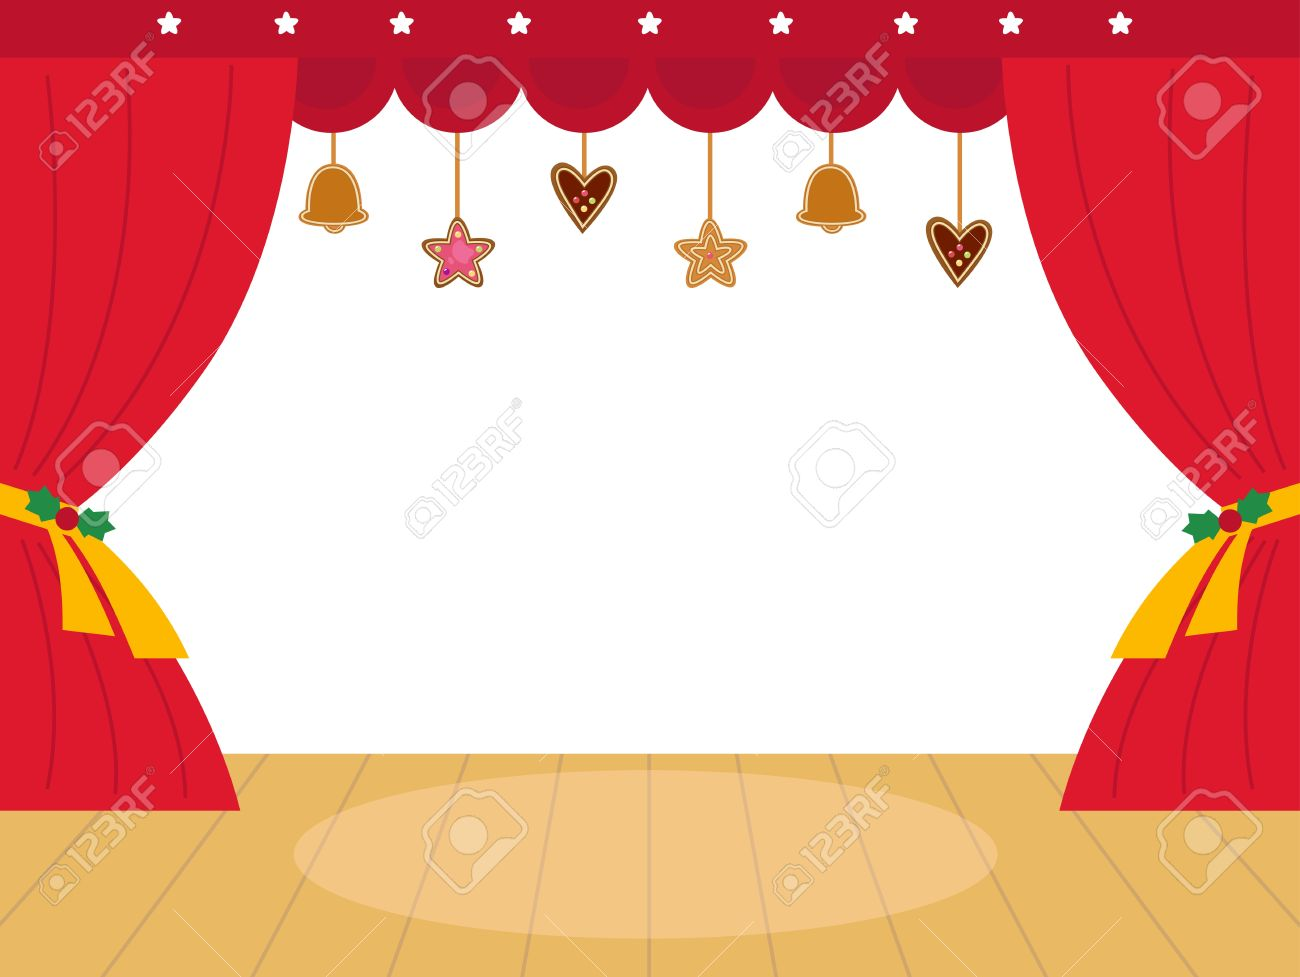 Curtain clipart curtain raiser Search  Christmas Christmas Google